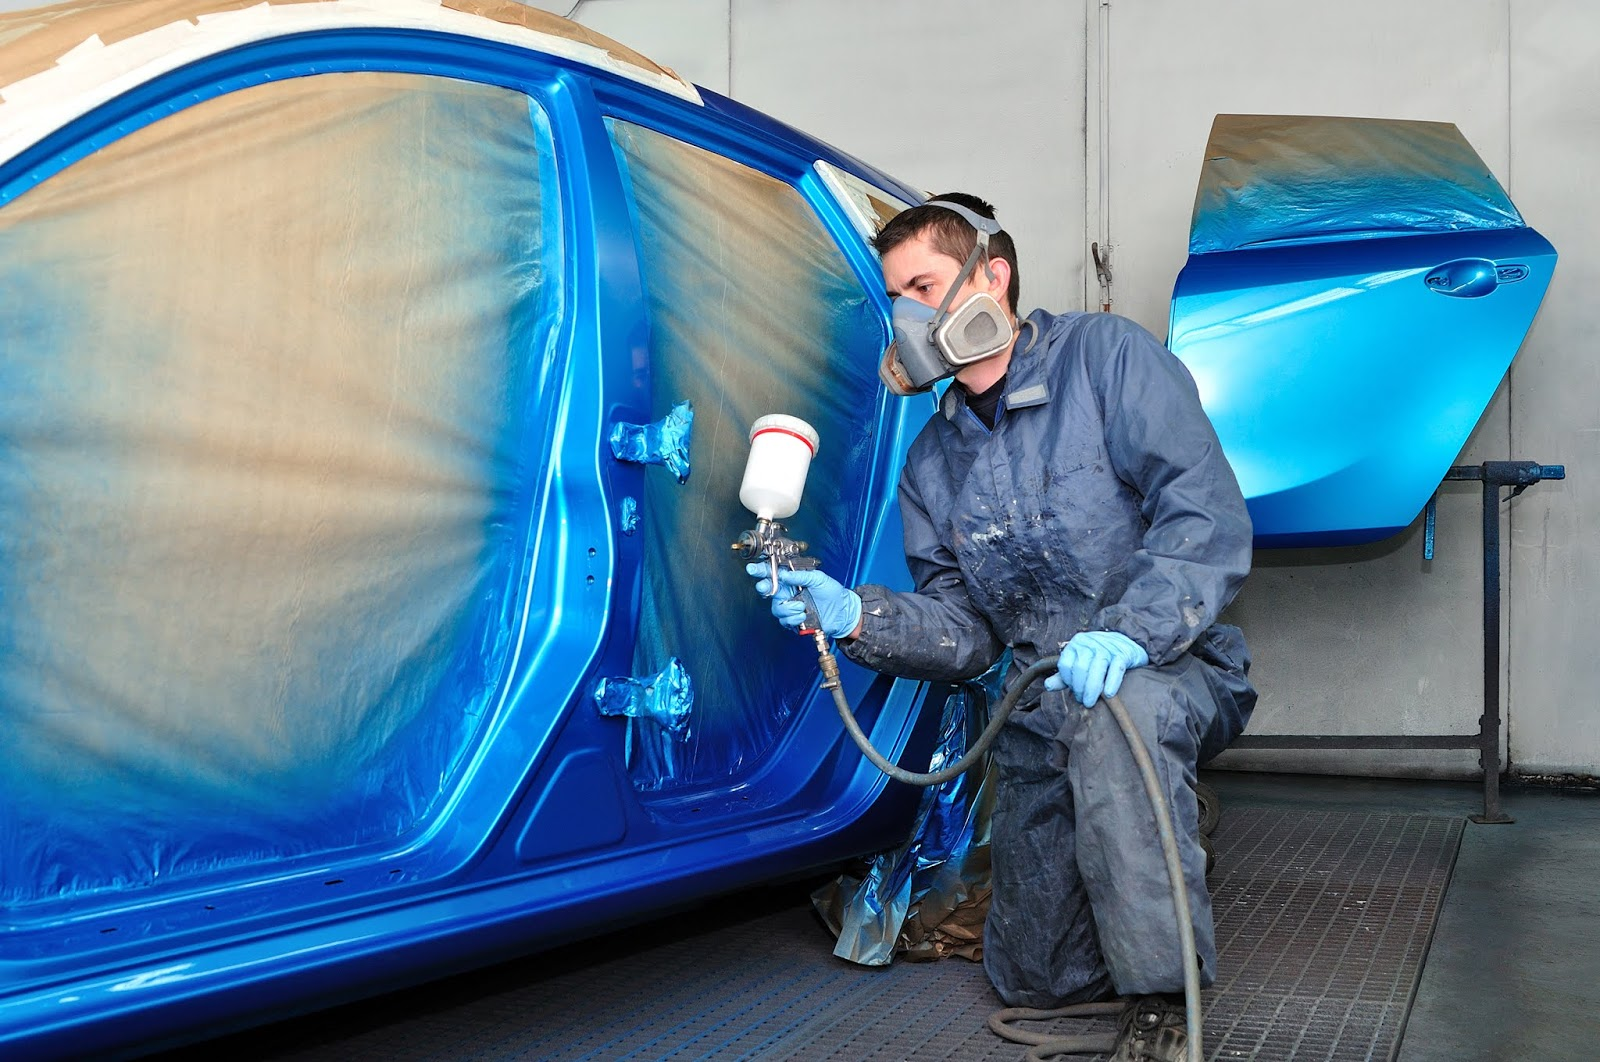 Repairing a damaged car- having your car repaired and painted